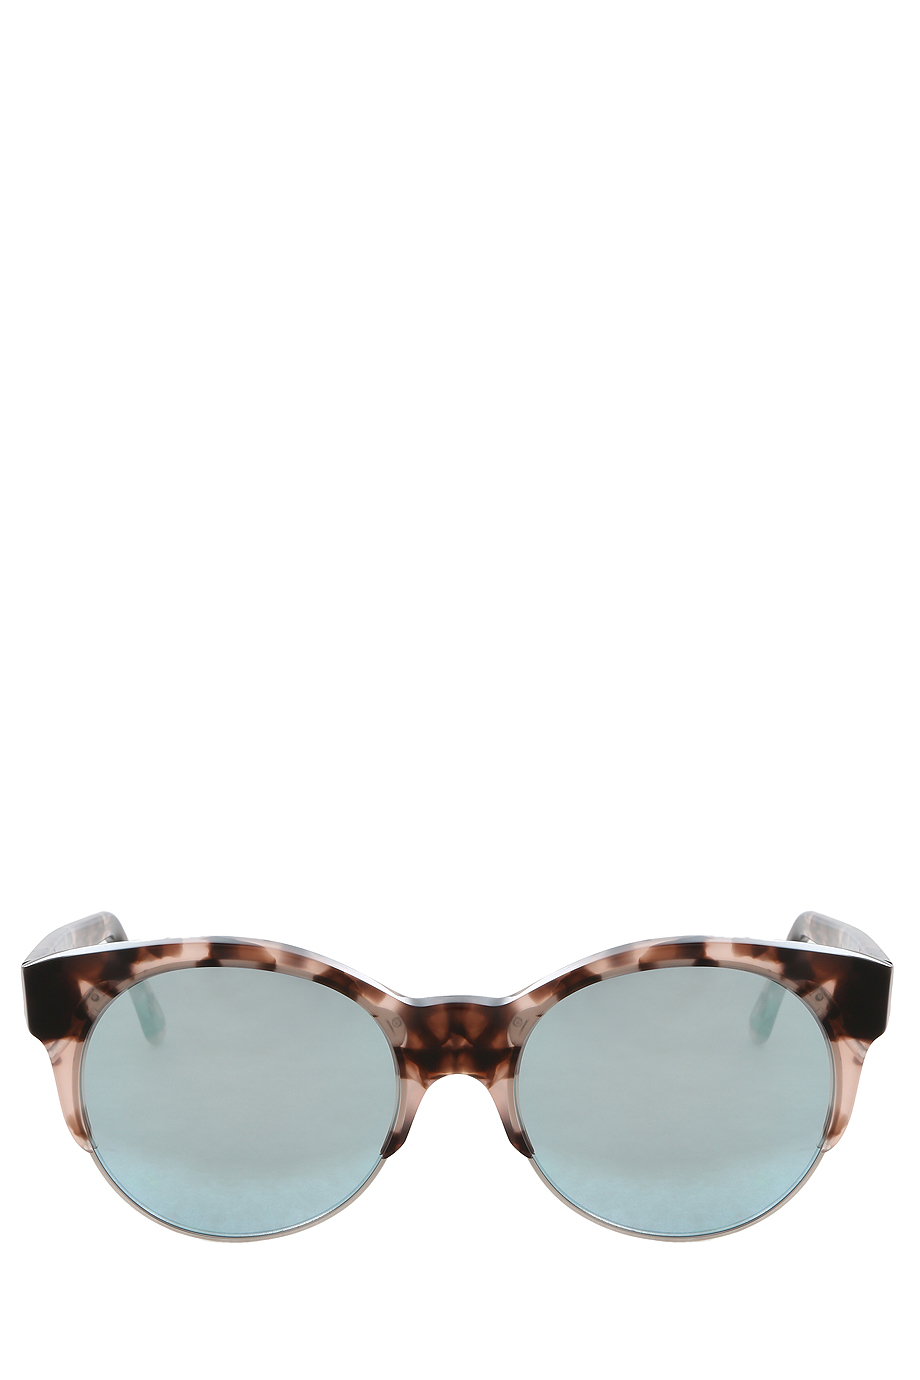 Lyst cutler gross mirror sunglasses in pink for Mirror sunglasses